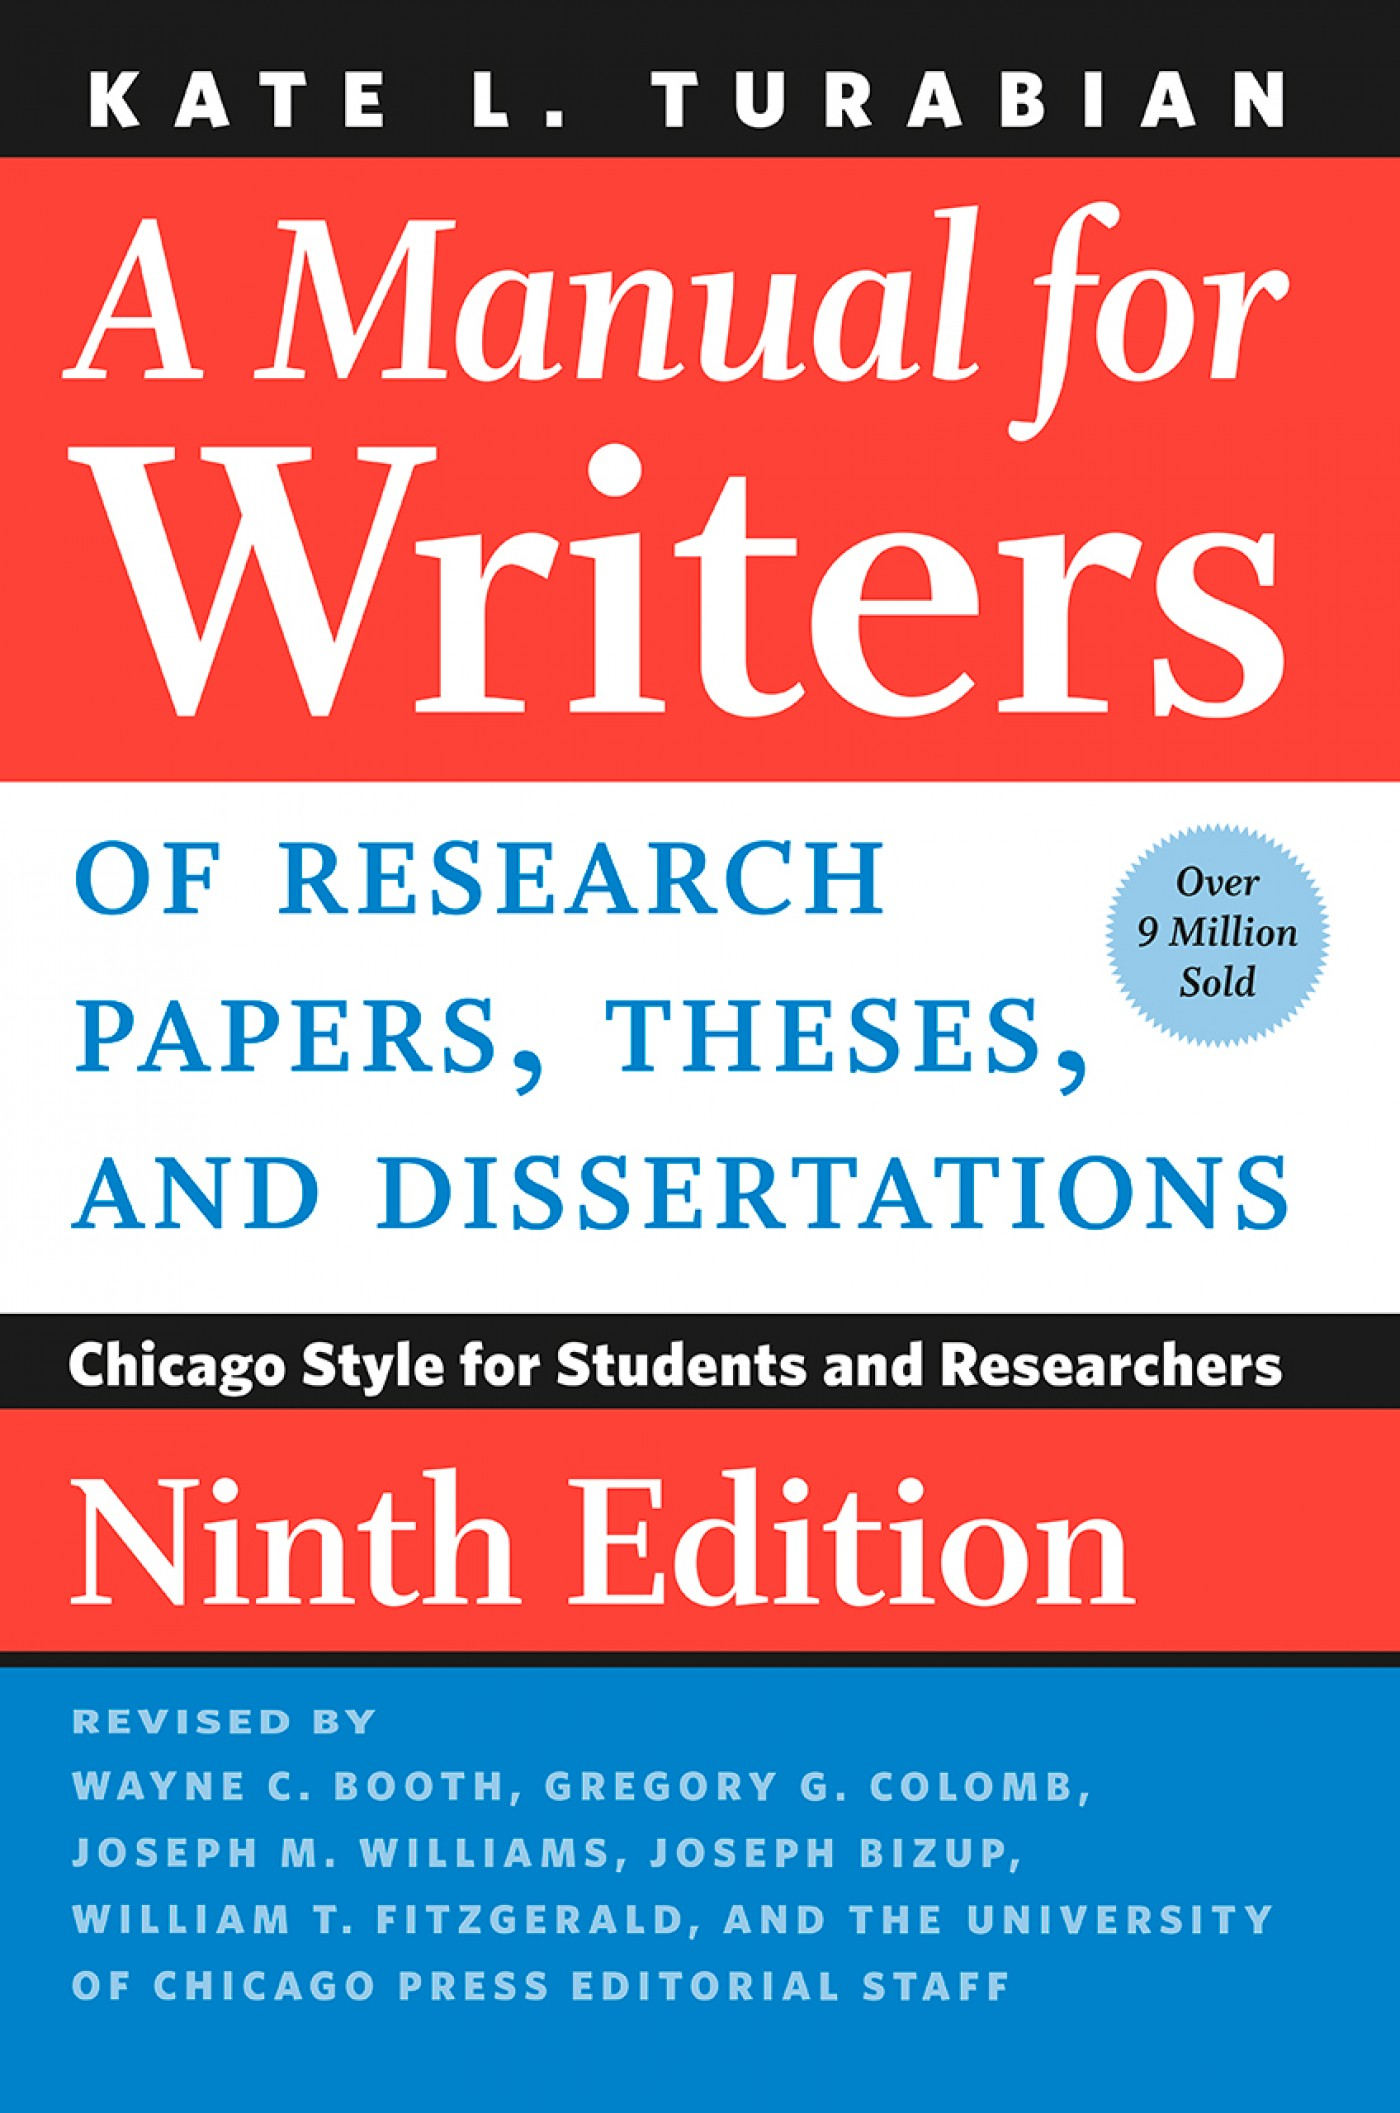 001 Research Paper Manual For Writers Of Papers Theses And Dissertations Amazing A Turabian Pdf 1400